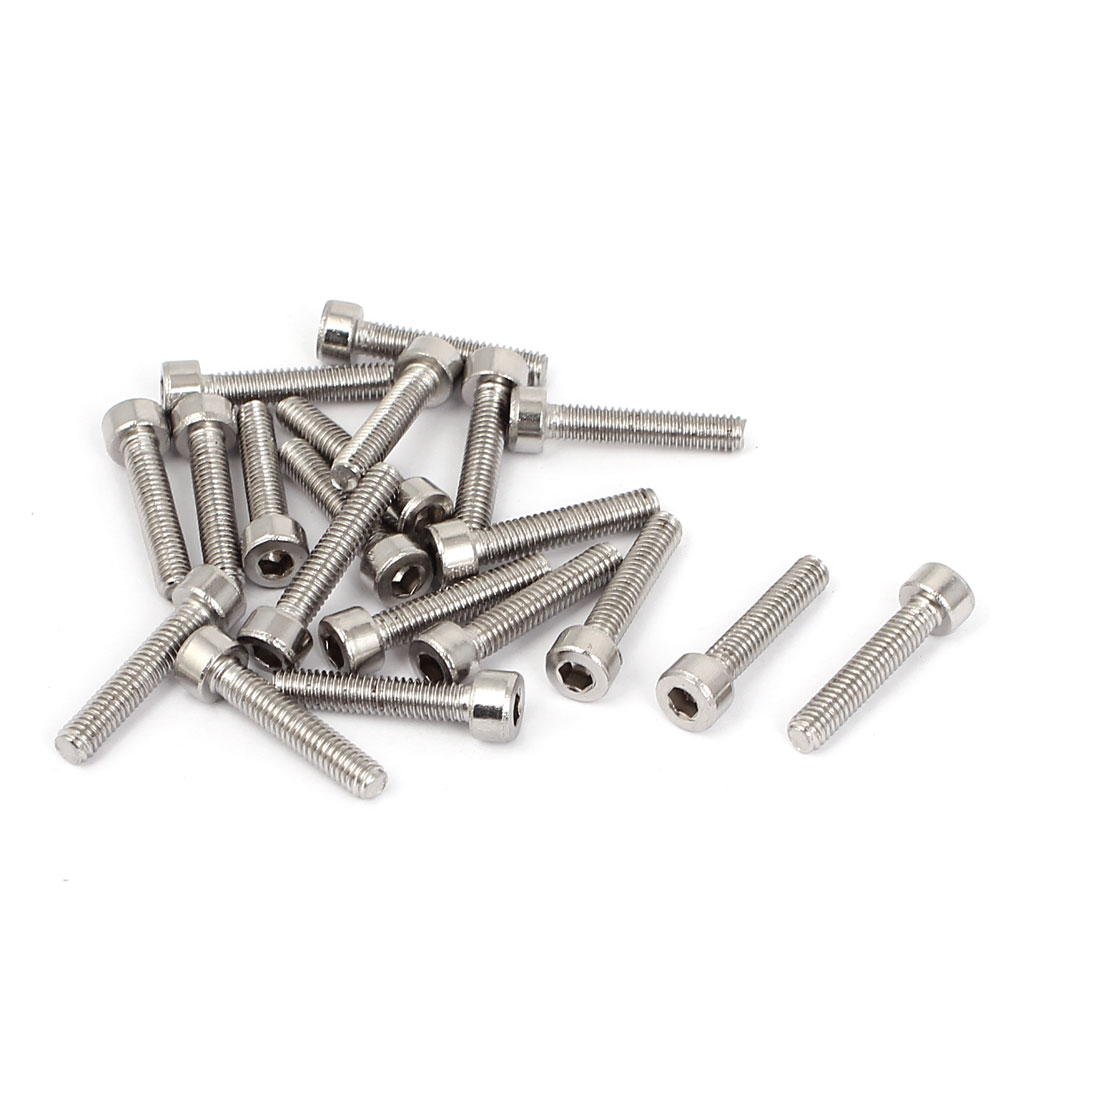 20 Pcs 24mm Long 4mmx20mm Stainless Steel Hex Socket Head Cap Screws 0.7mm Pitch